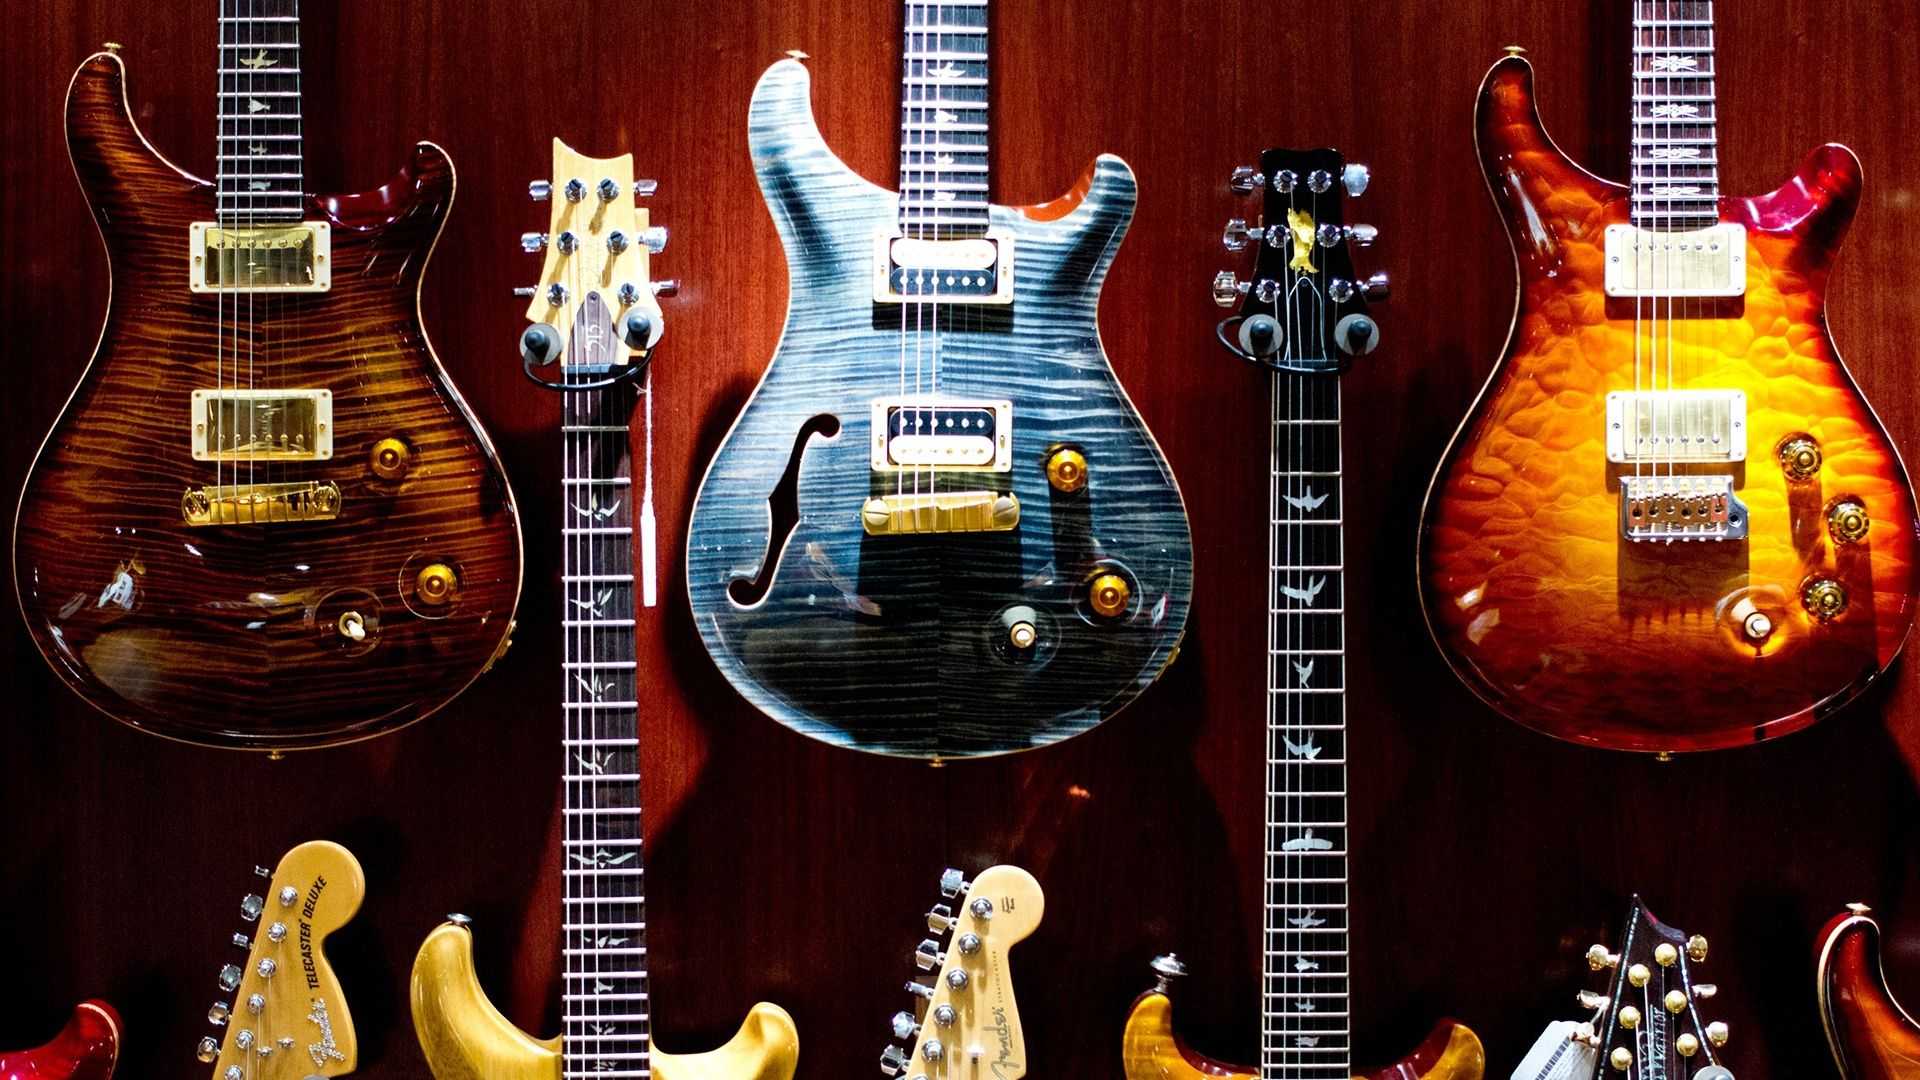 All Electric Guitars Wallpaper In 2020 Electric Guitar Vintage Electric Guitars Guitar